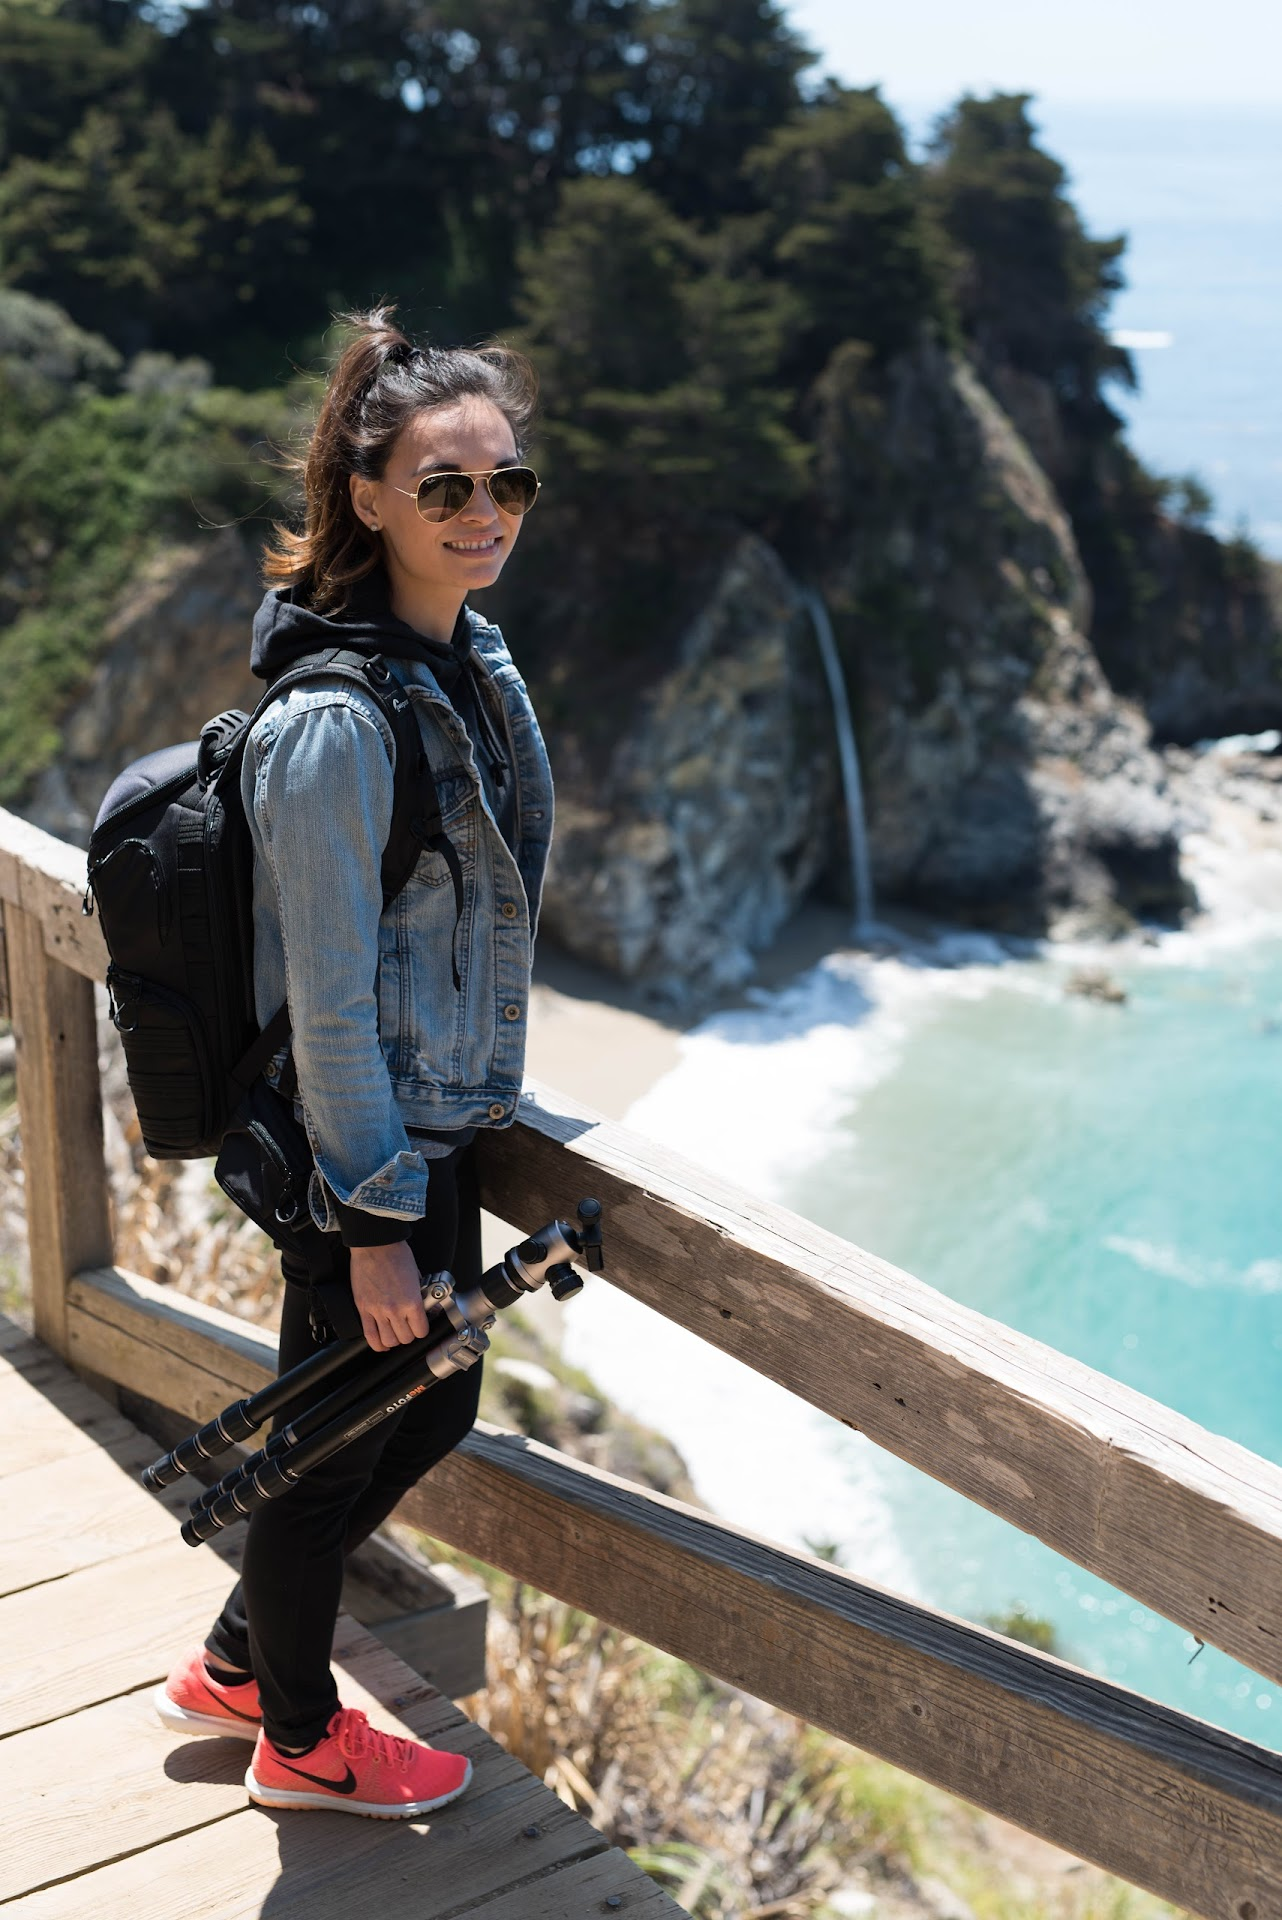 mcway falls, big sur, monterey, what to do in big sur, travel blogger, california, central coast, what to wear camping, hiking outfit ideas,